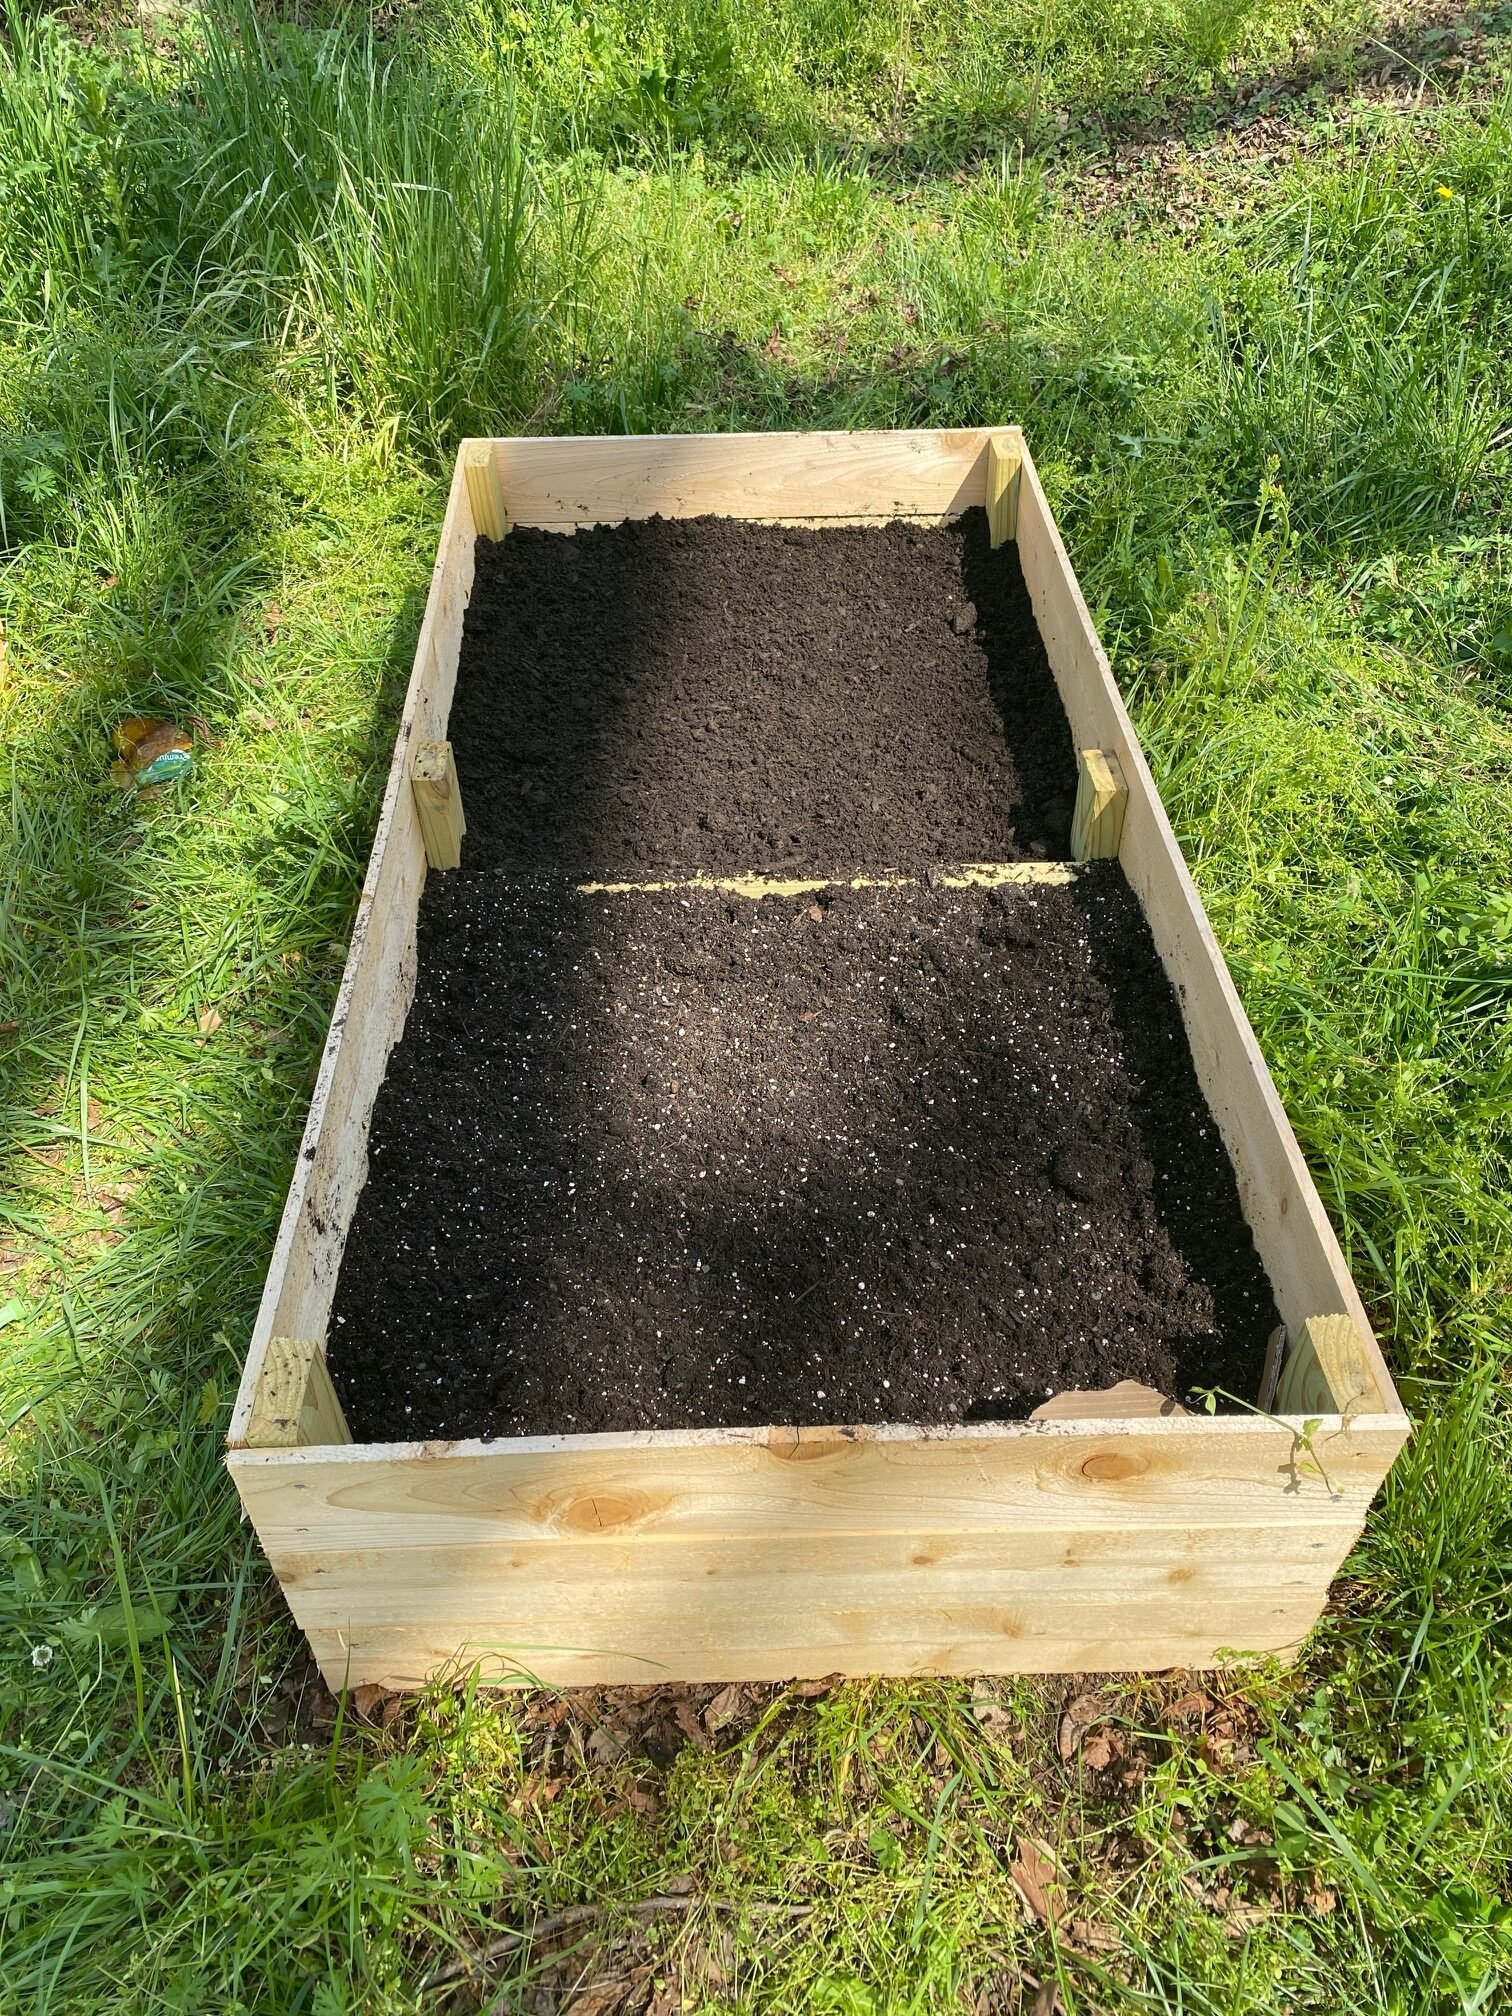 Raised garden bed filled with soil